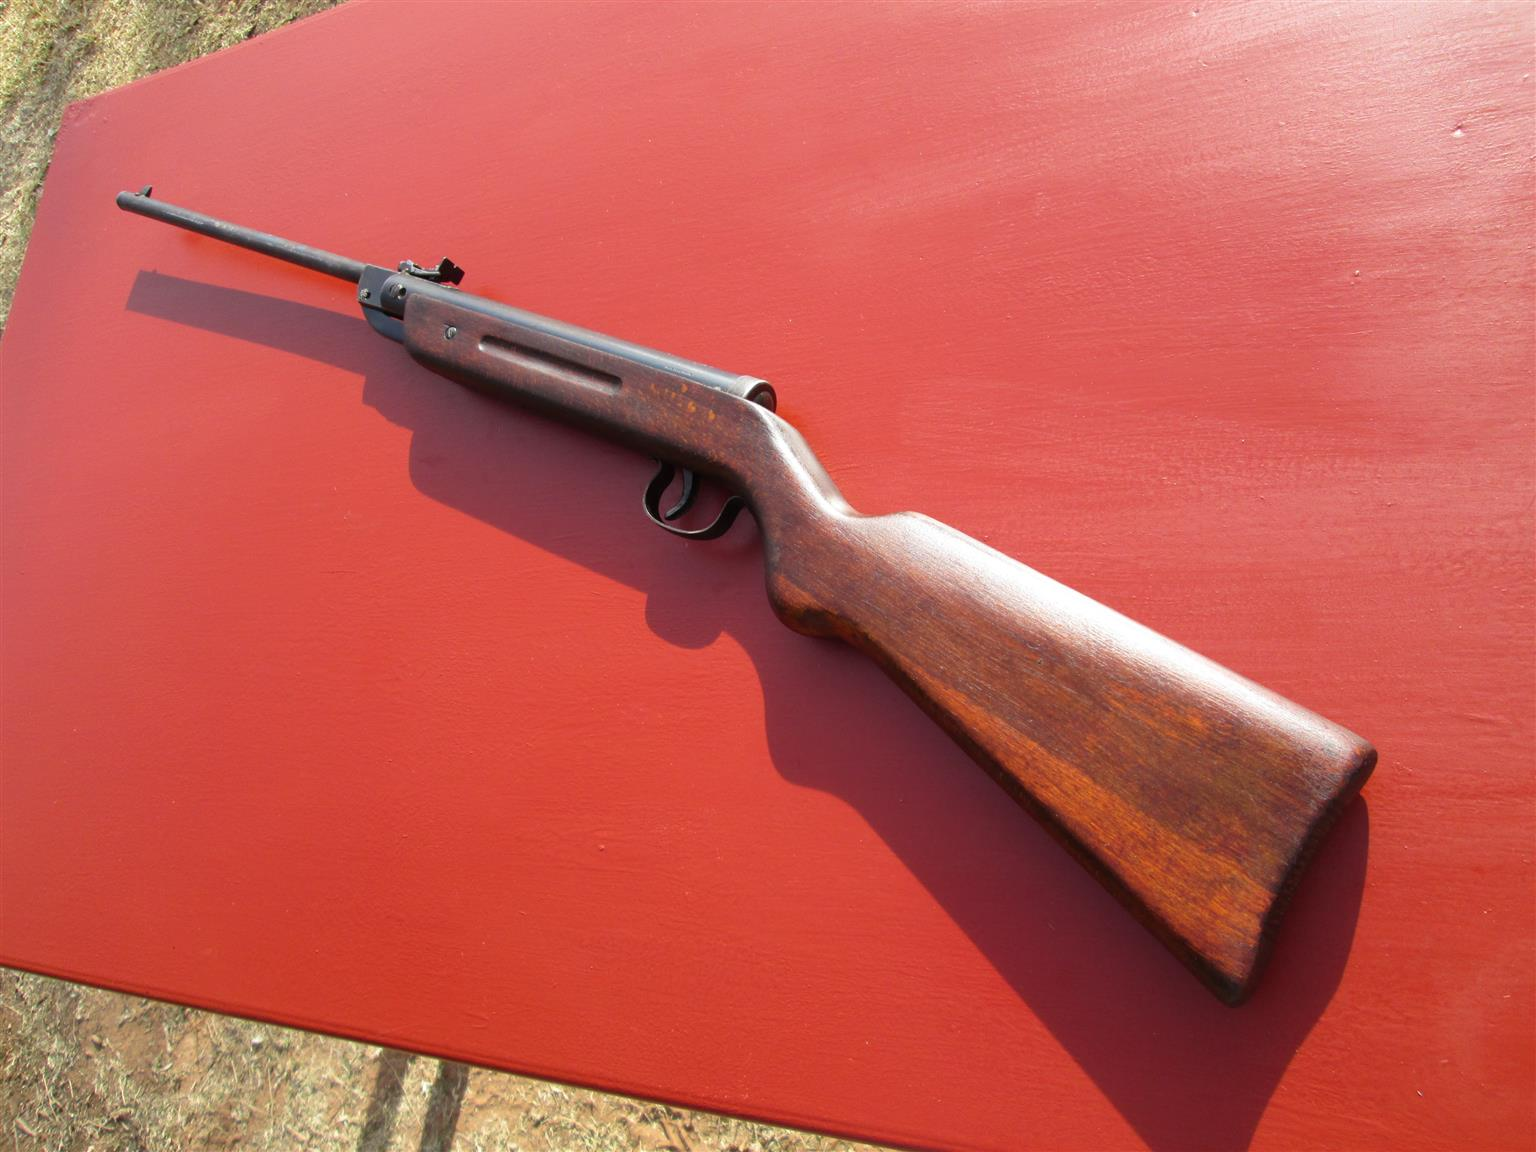 DIANA Mod. 25: air-gun, air-rifle, windbuks, vintage, collectable, fully functional (Gecado, Falke, BSA, BSF, Telly, Wishco Erlangen, Webley also available and listed)